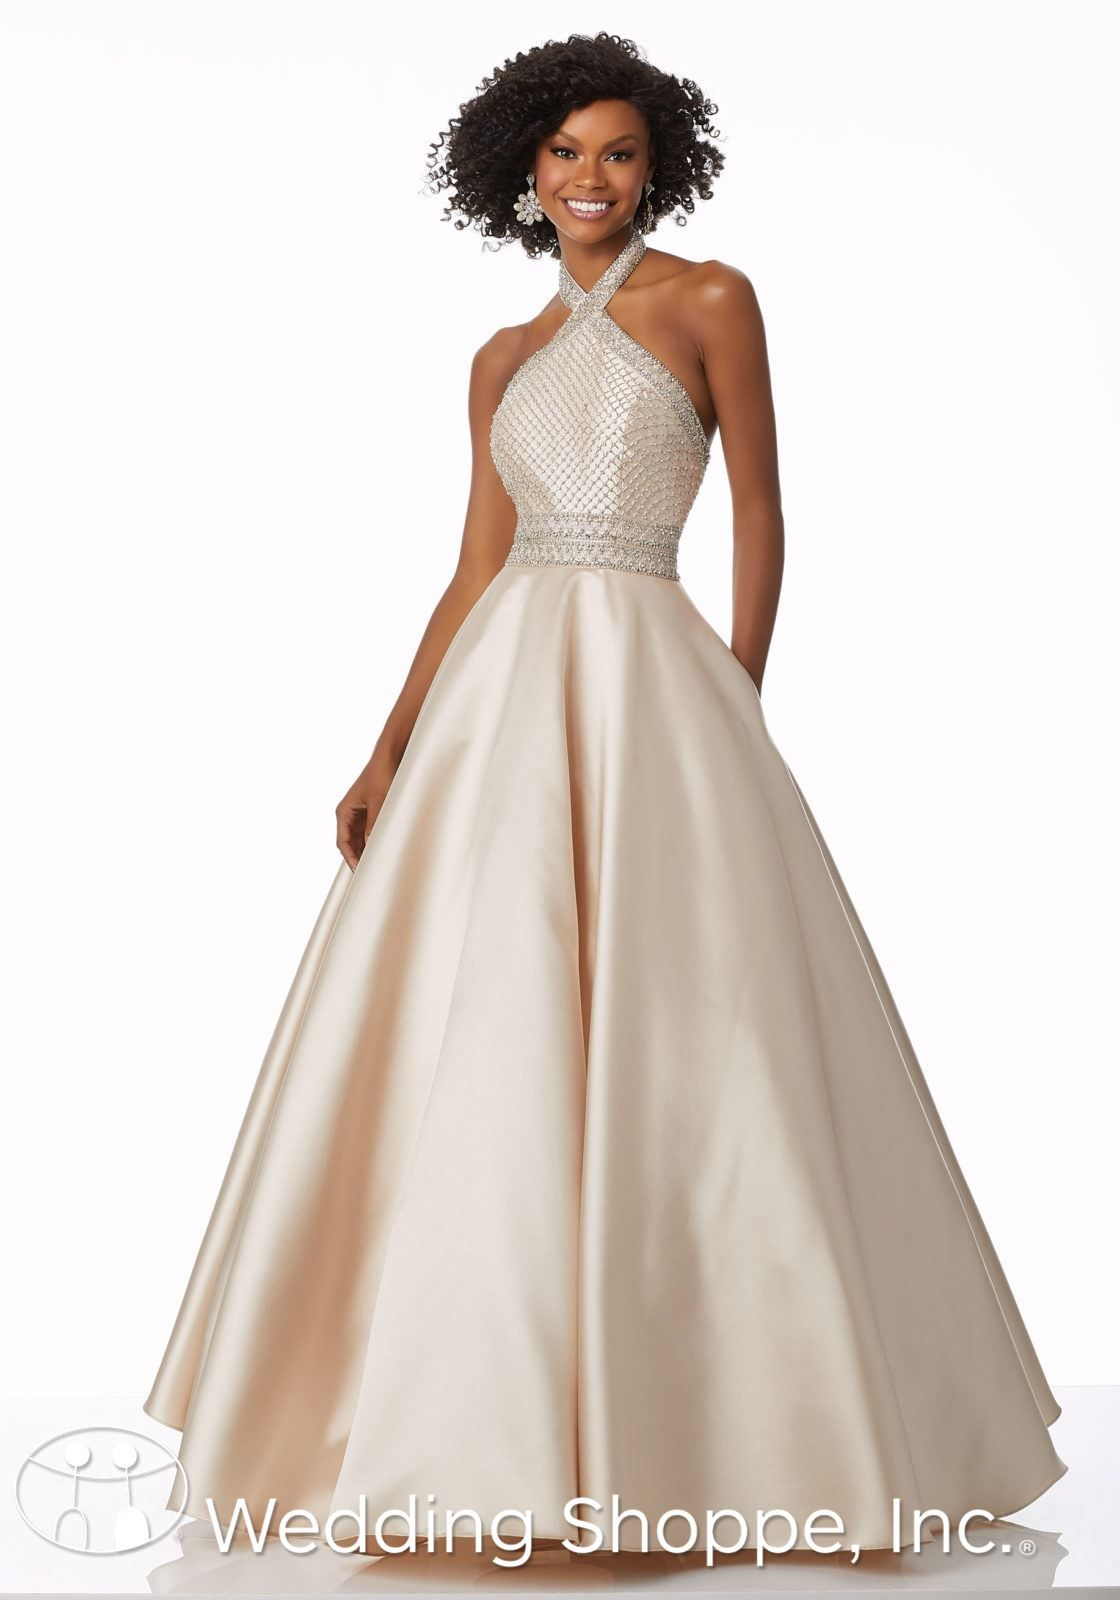 Mori Lee Prom Dress 42032 | Mori lee prom dresses, Mori lee prom and ...